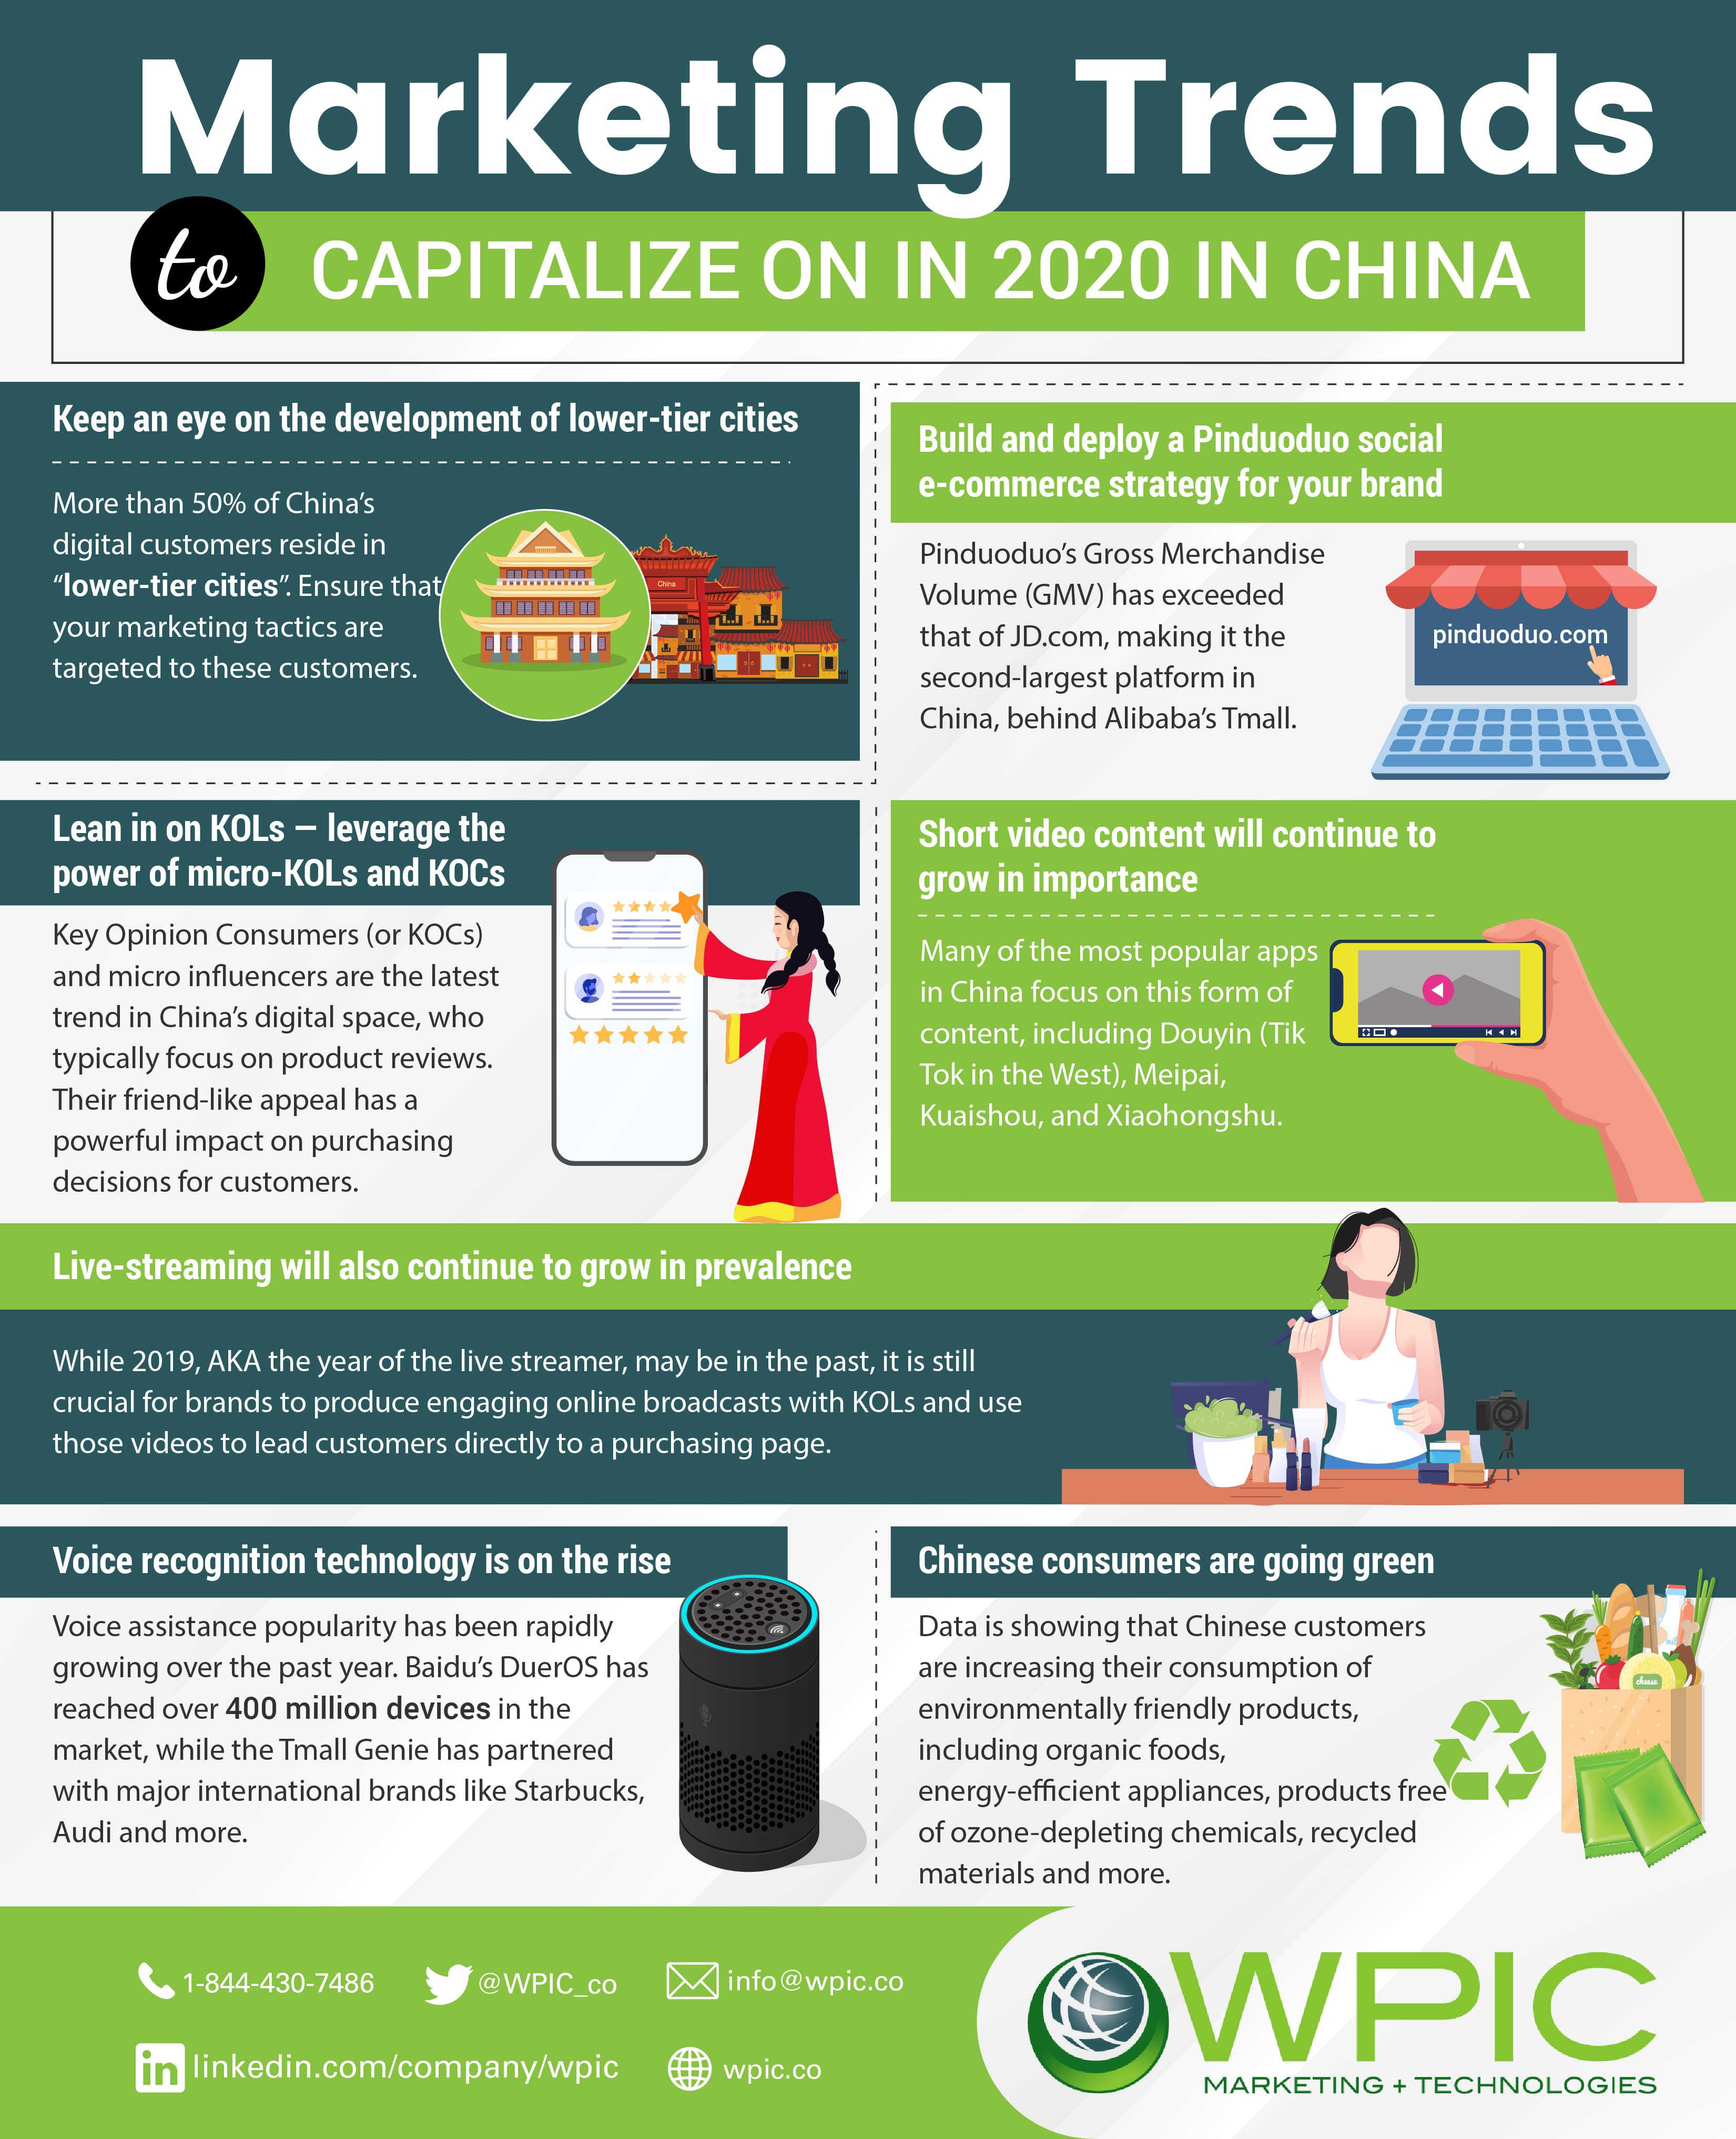 Marketing trends to capitalize on in 2020 in China infographic